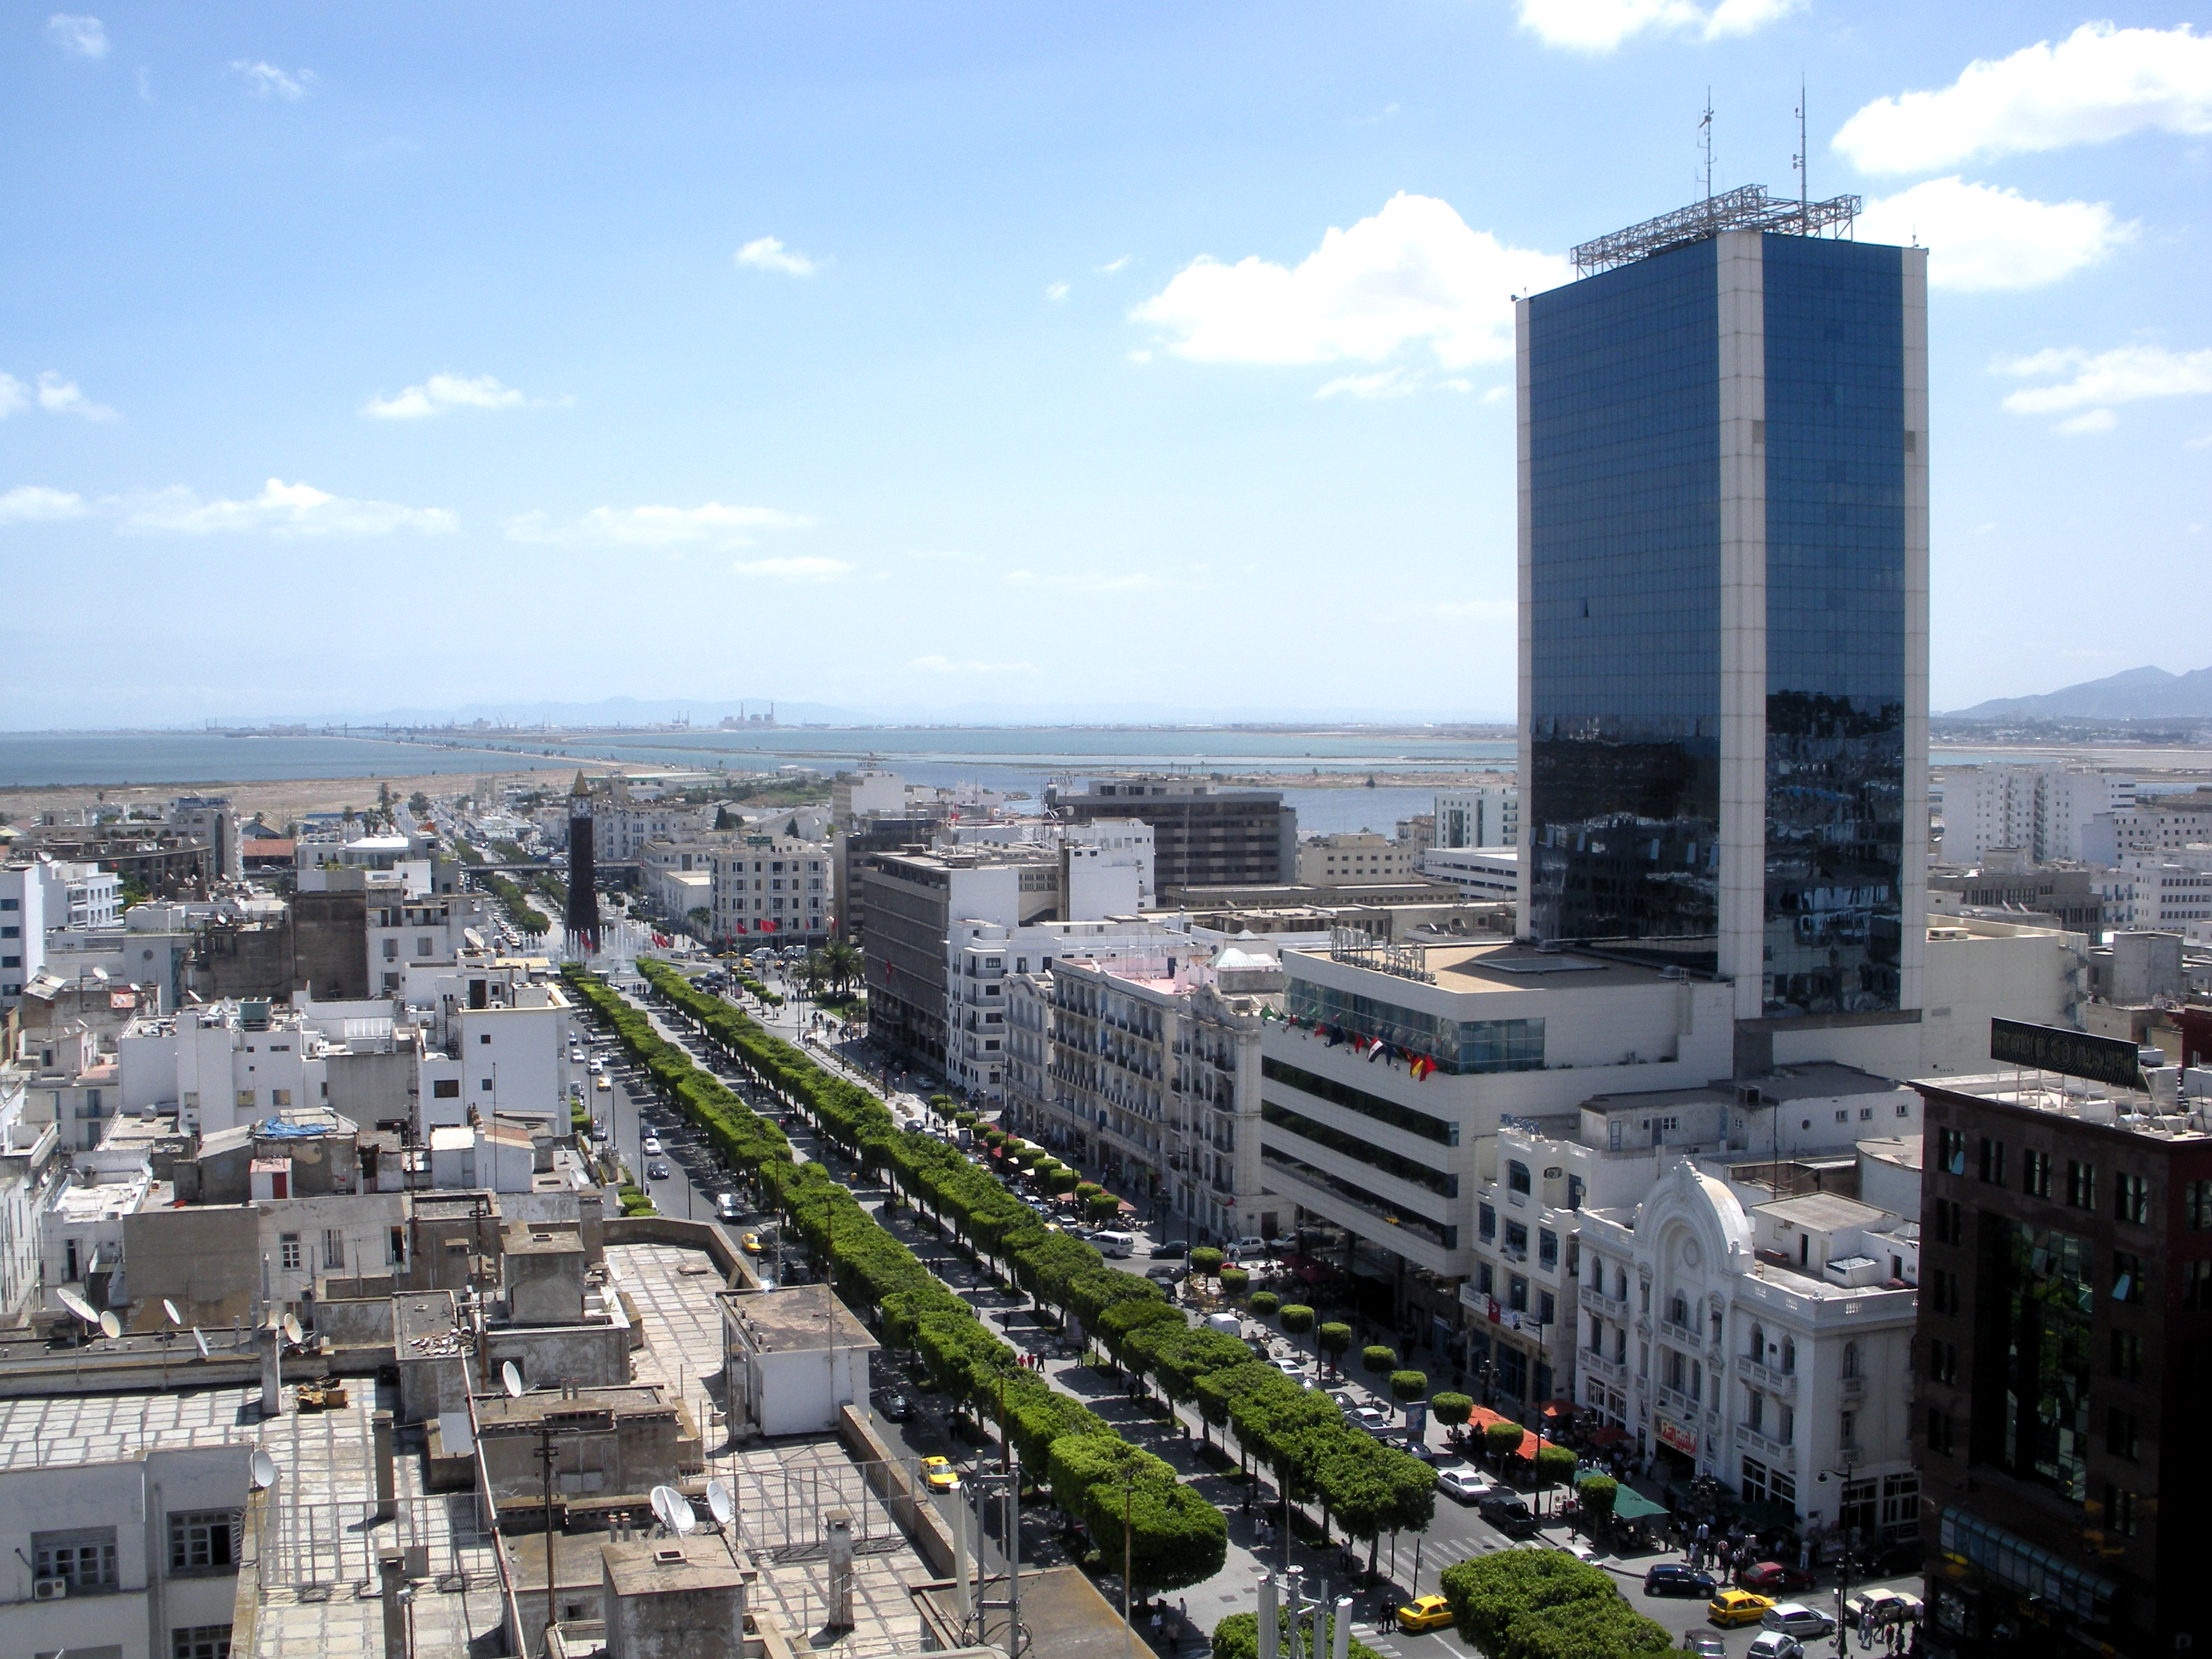 Egyptair reservation airport office in tunis tunisia airlines airports - Egyptair airport office number ...